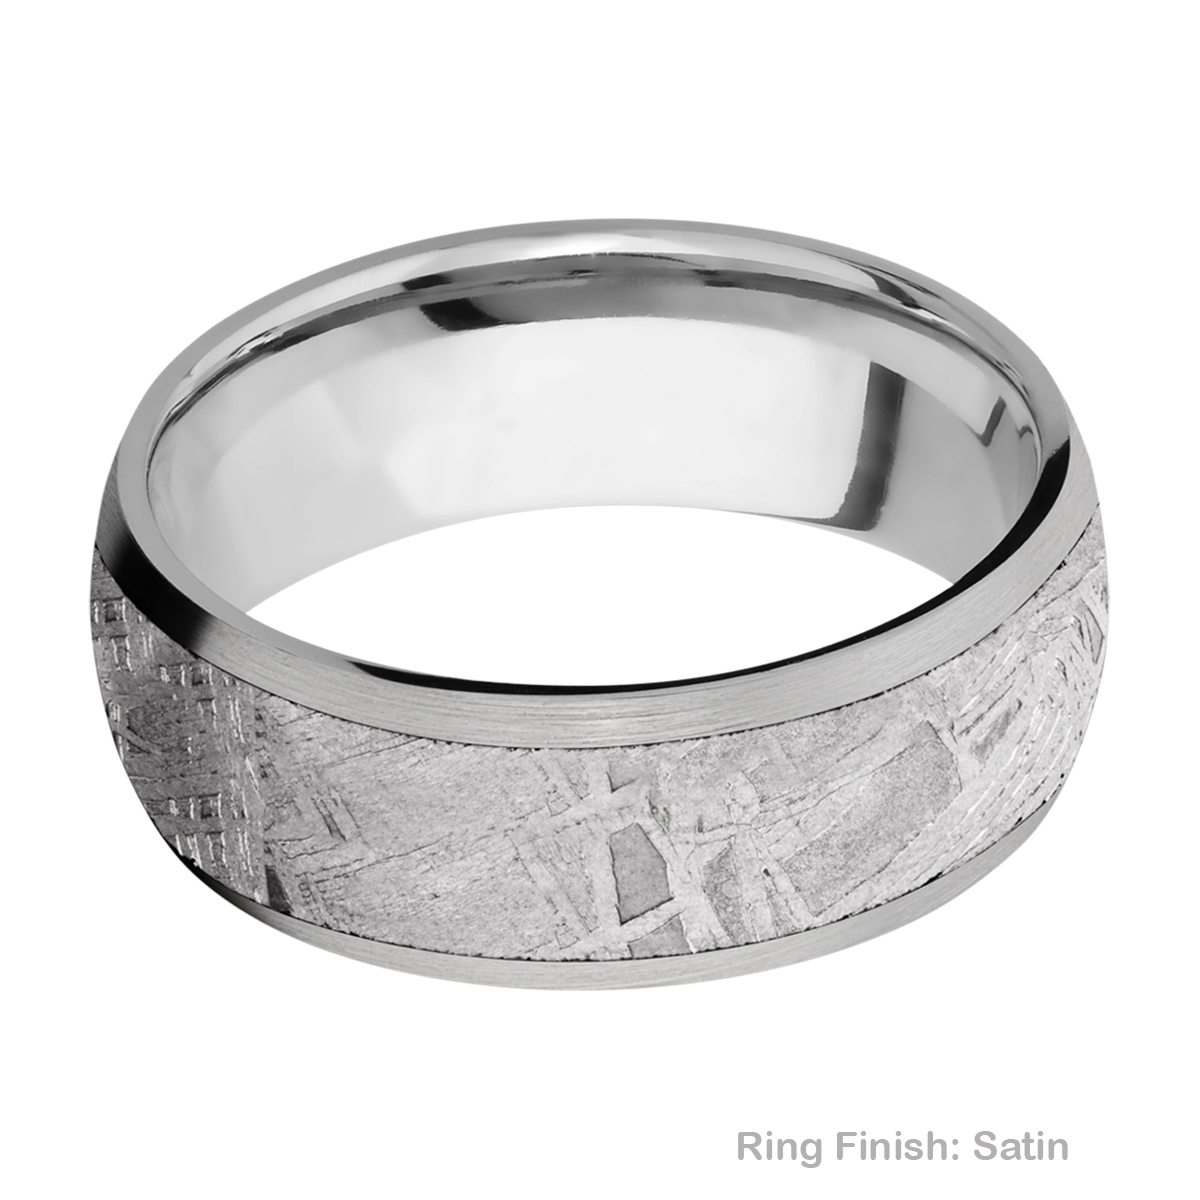 Lashbrook 8D16/METEORITE Titanium Wedding Ring or Band Alternative View 5